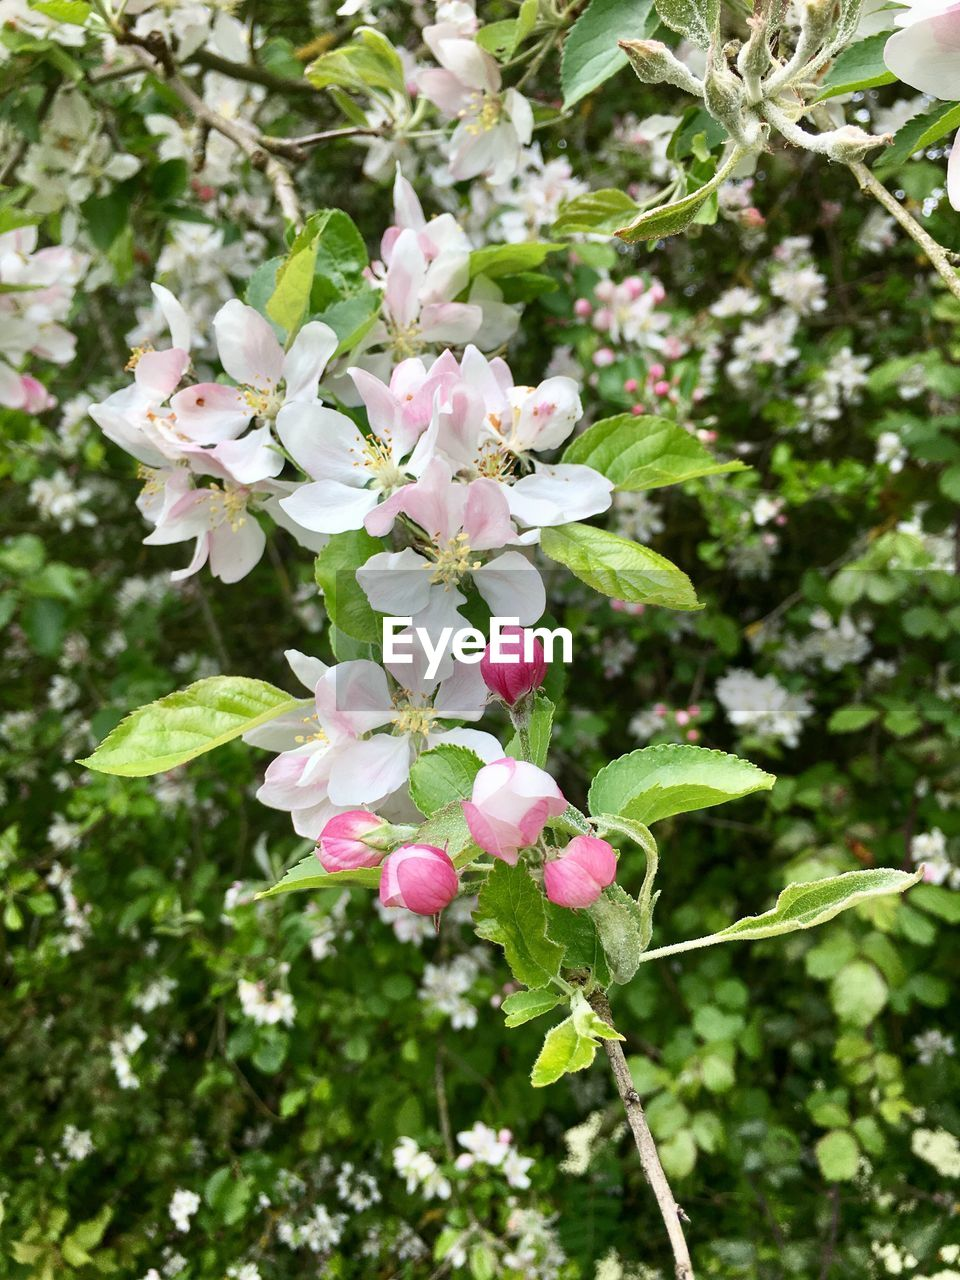 flower, growth, fragility, pink color, nature, beauty in nature, petal, blossom, day, tree, freshness, no people, focus on foreground, plant, blooming, outdoors, branch, close-up, springtime, flower head